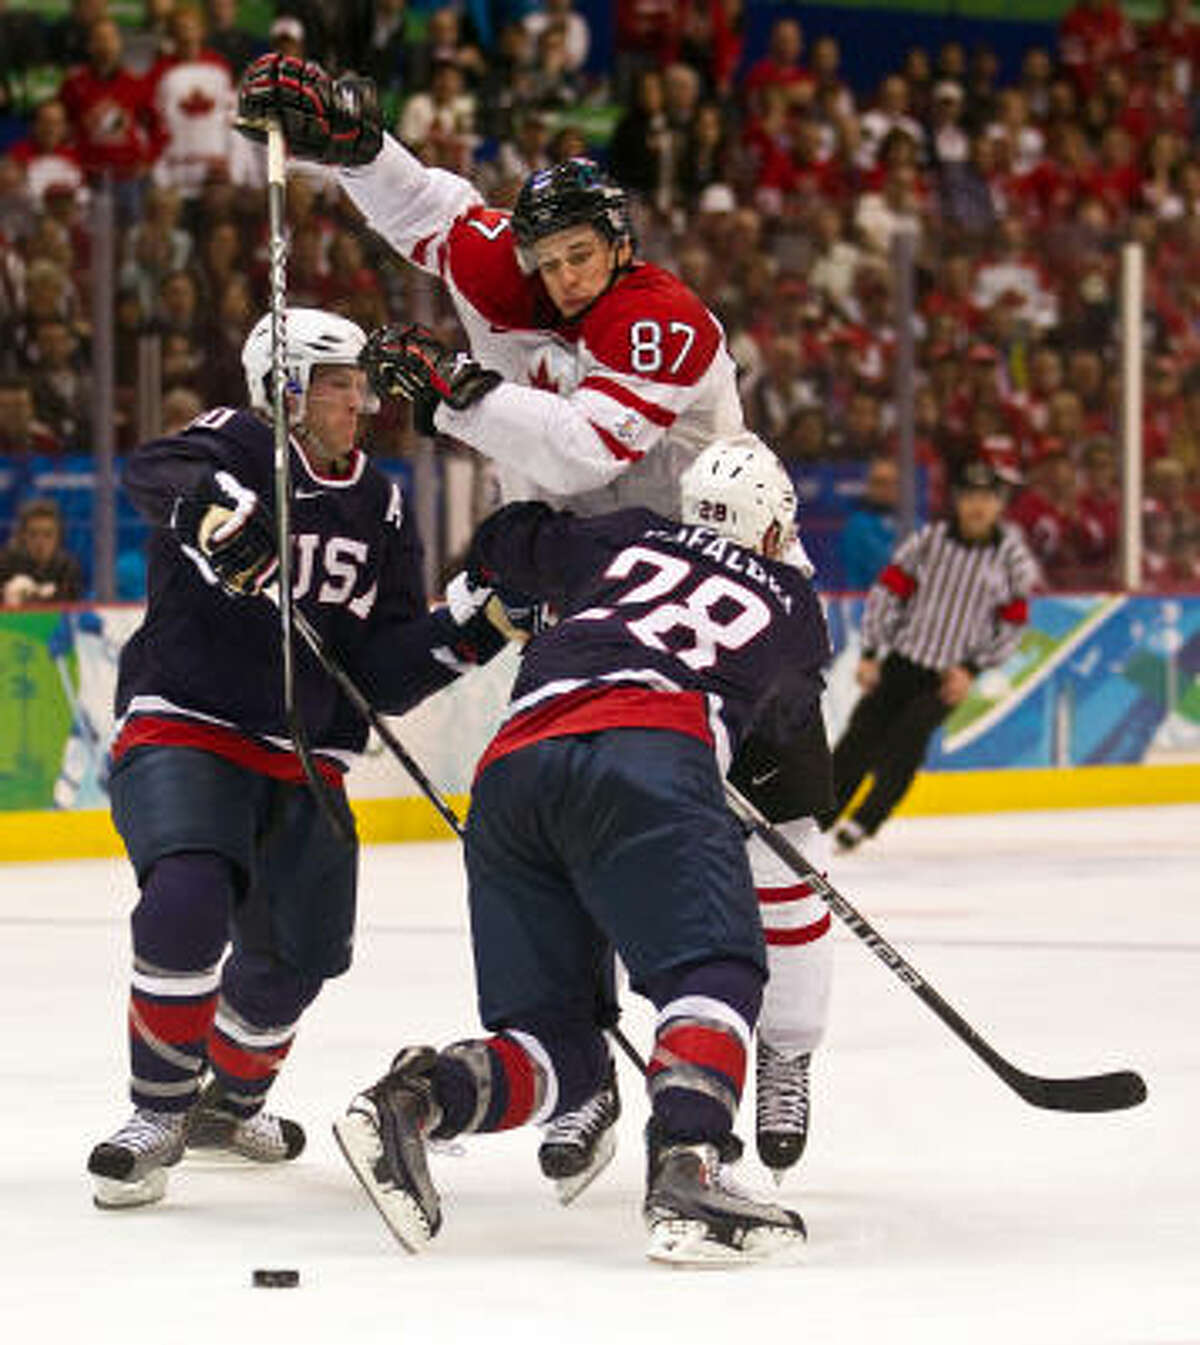 USA's Ryan Suter and Brian Rafalski try to hold up Canada's Sidney Crosby as Crosby brings the puck into the USA zone just before scoring the game-winner during the overtime period in the men's ice hockey gold medal game.